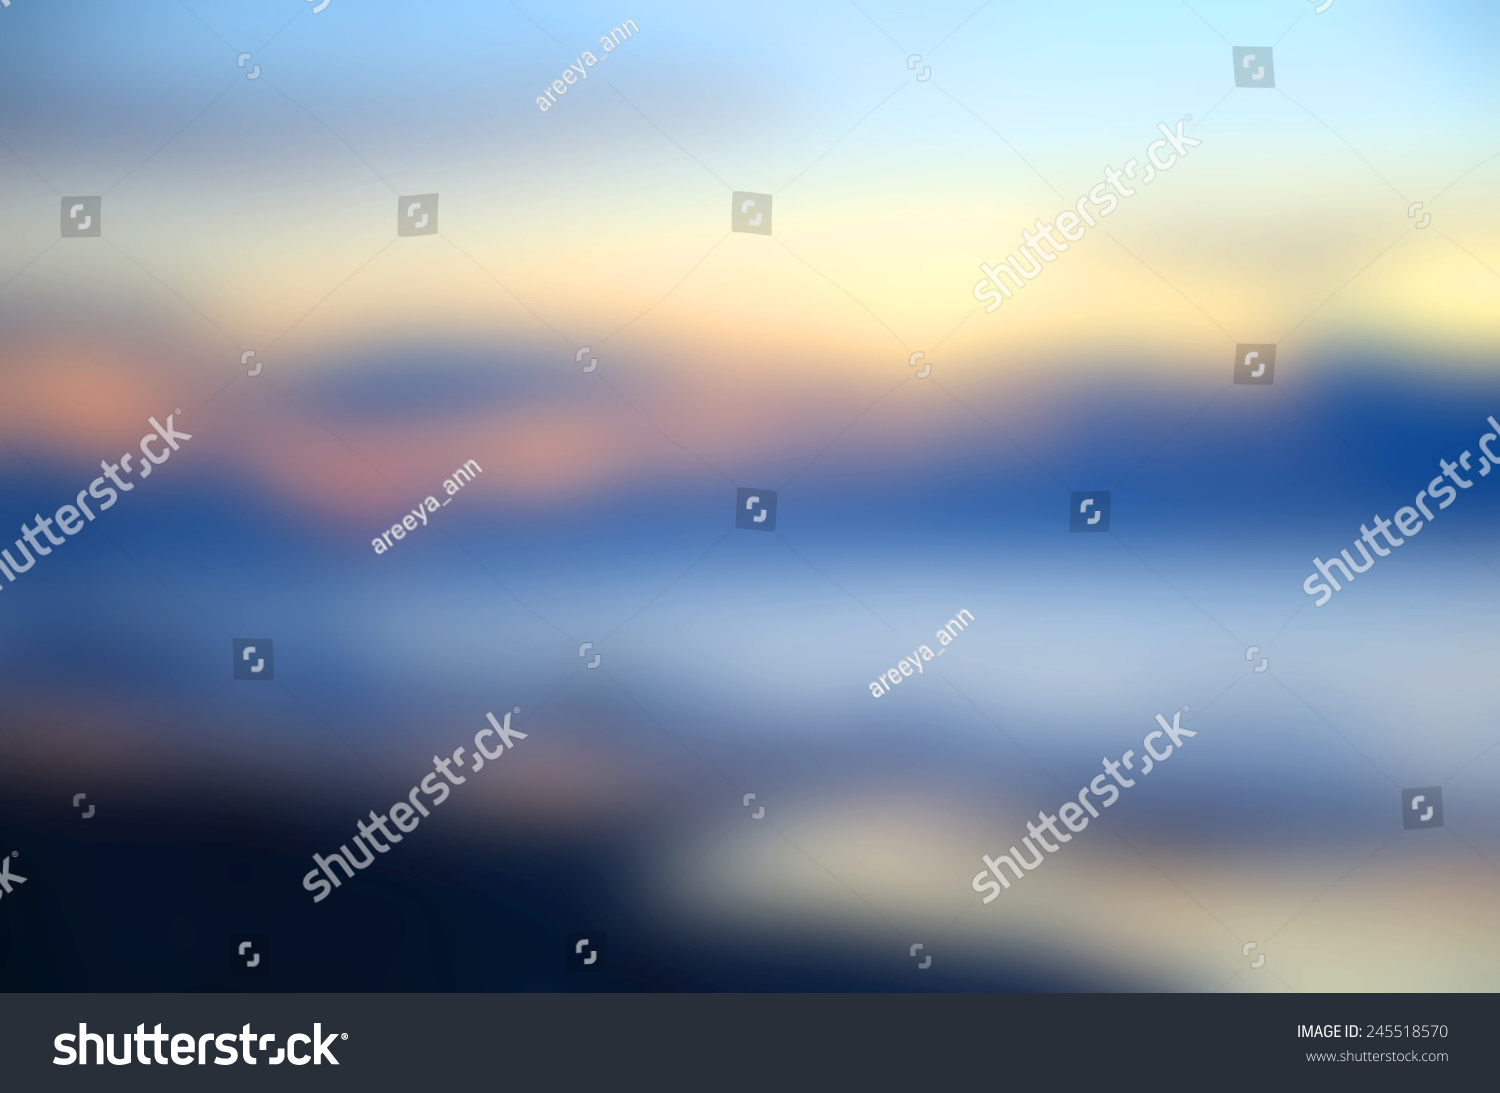 light natural phenomenon stock - photo #14